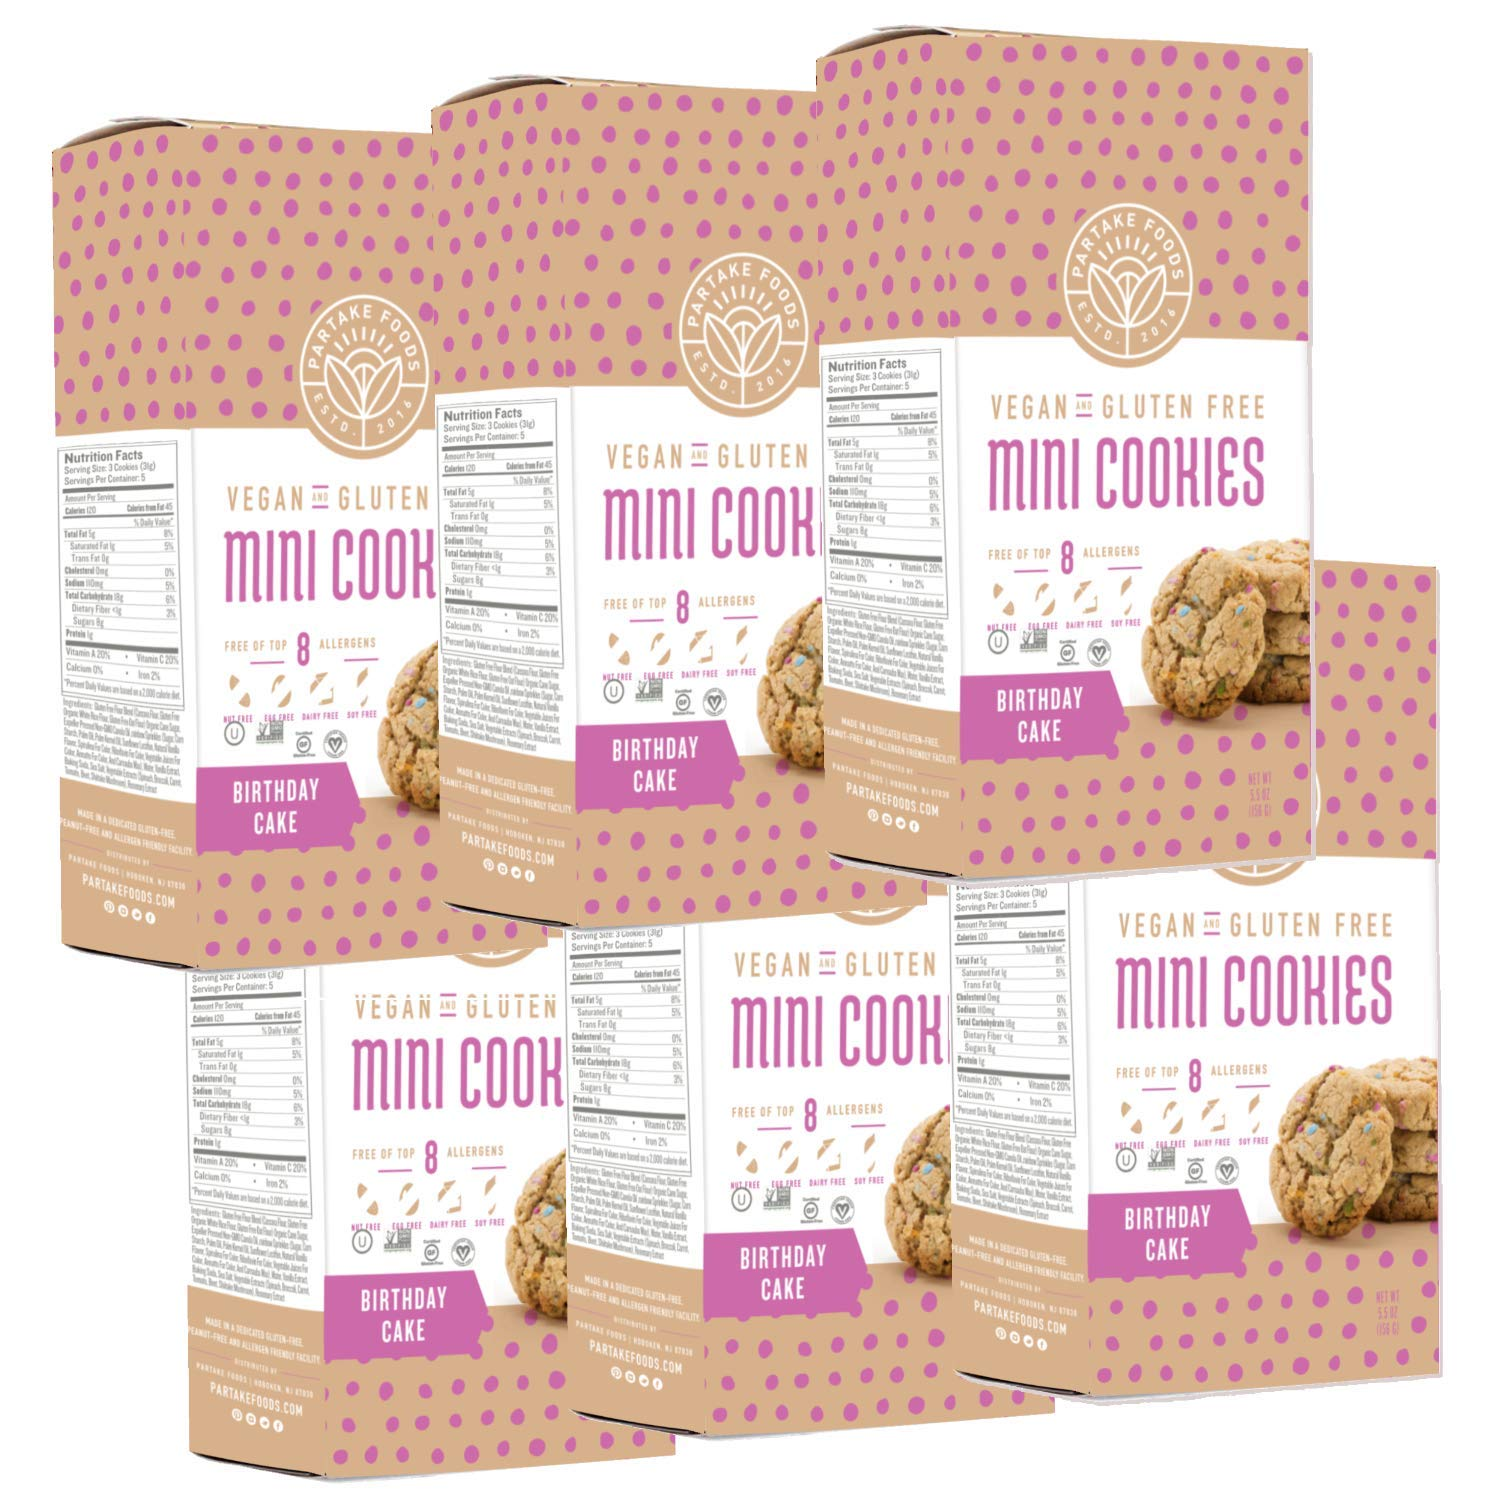 Partake Foods Crunchy Mini Cookies, Birthday Cake, Vegan, Nut Free, Gluten Free Snack, Free of Top 8 Allergens, Lower in Sugar, High in Nutrition, Safe for the School Yard (6 Boxes) by Partake Foods